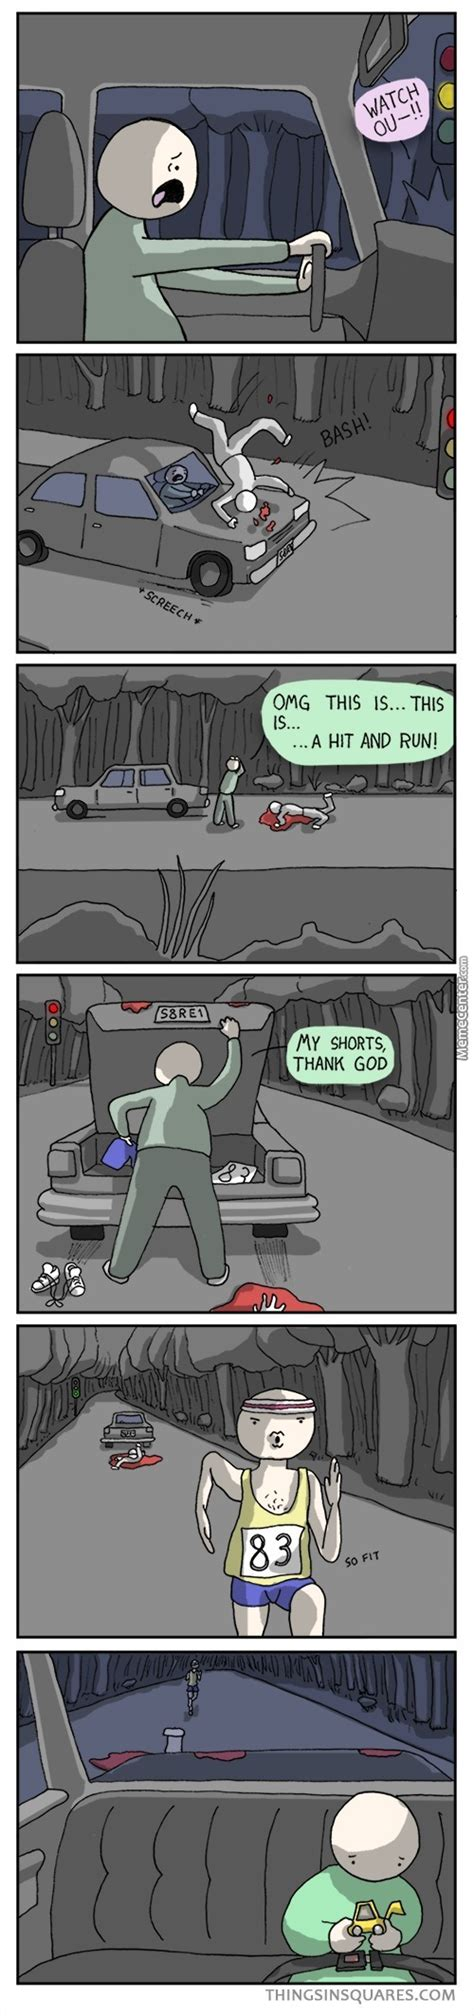 Car Accident Meme - car accident memes best collection of funny car accident pictures